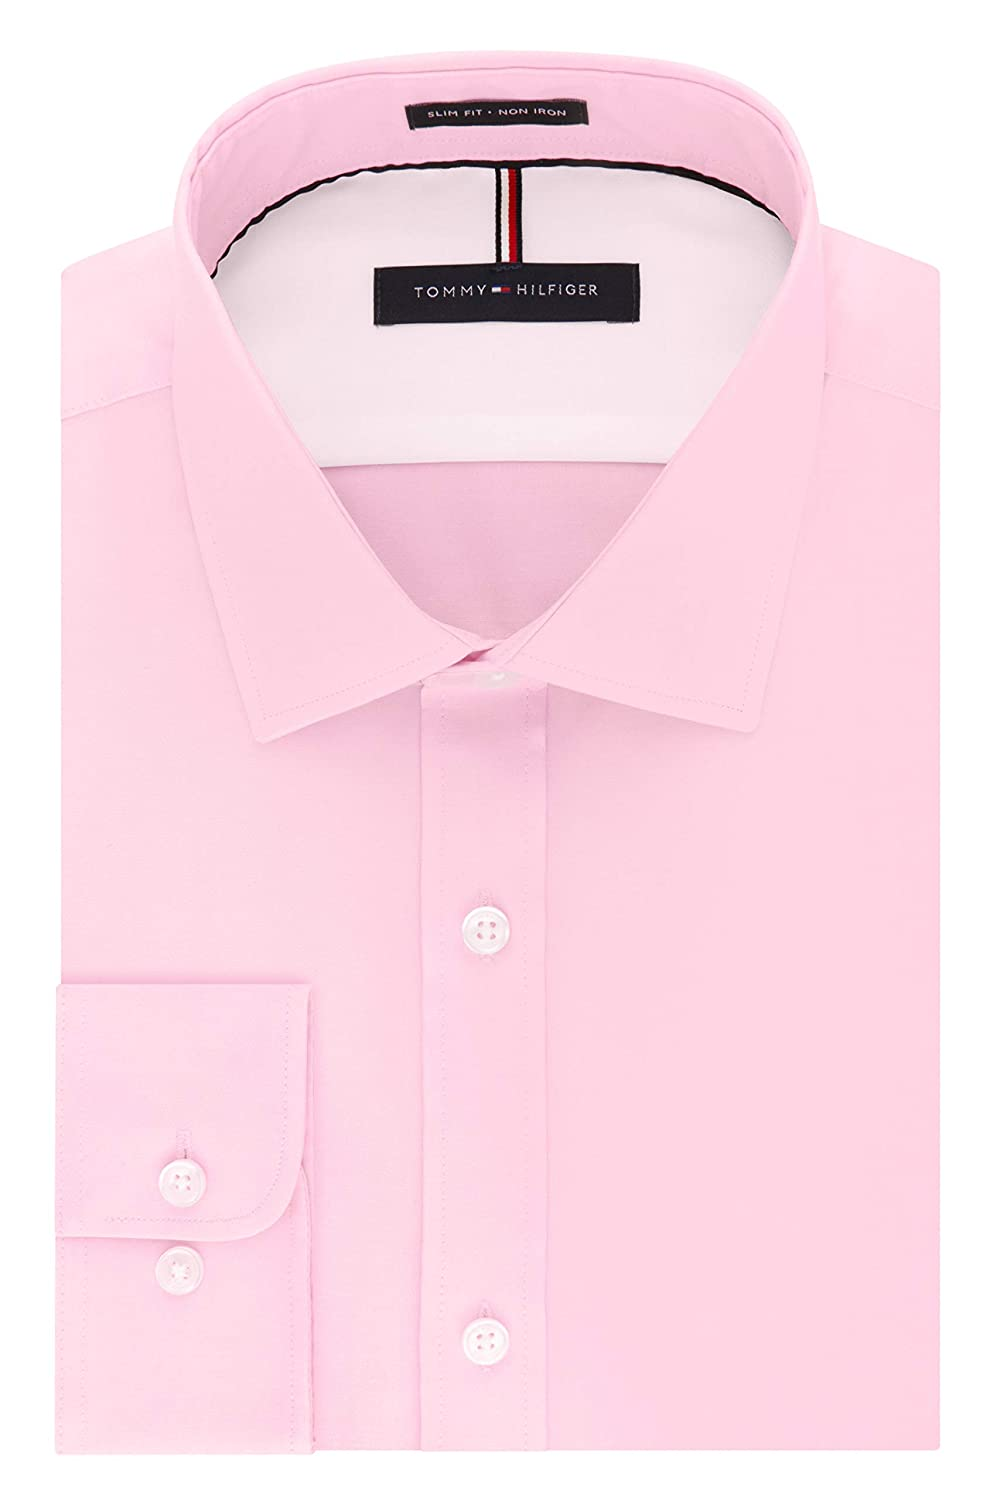 Tommy Hilfiger Mens Dress Shirt Slim Fit Non Iron Solid